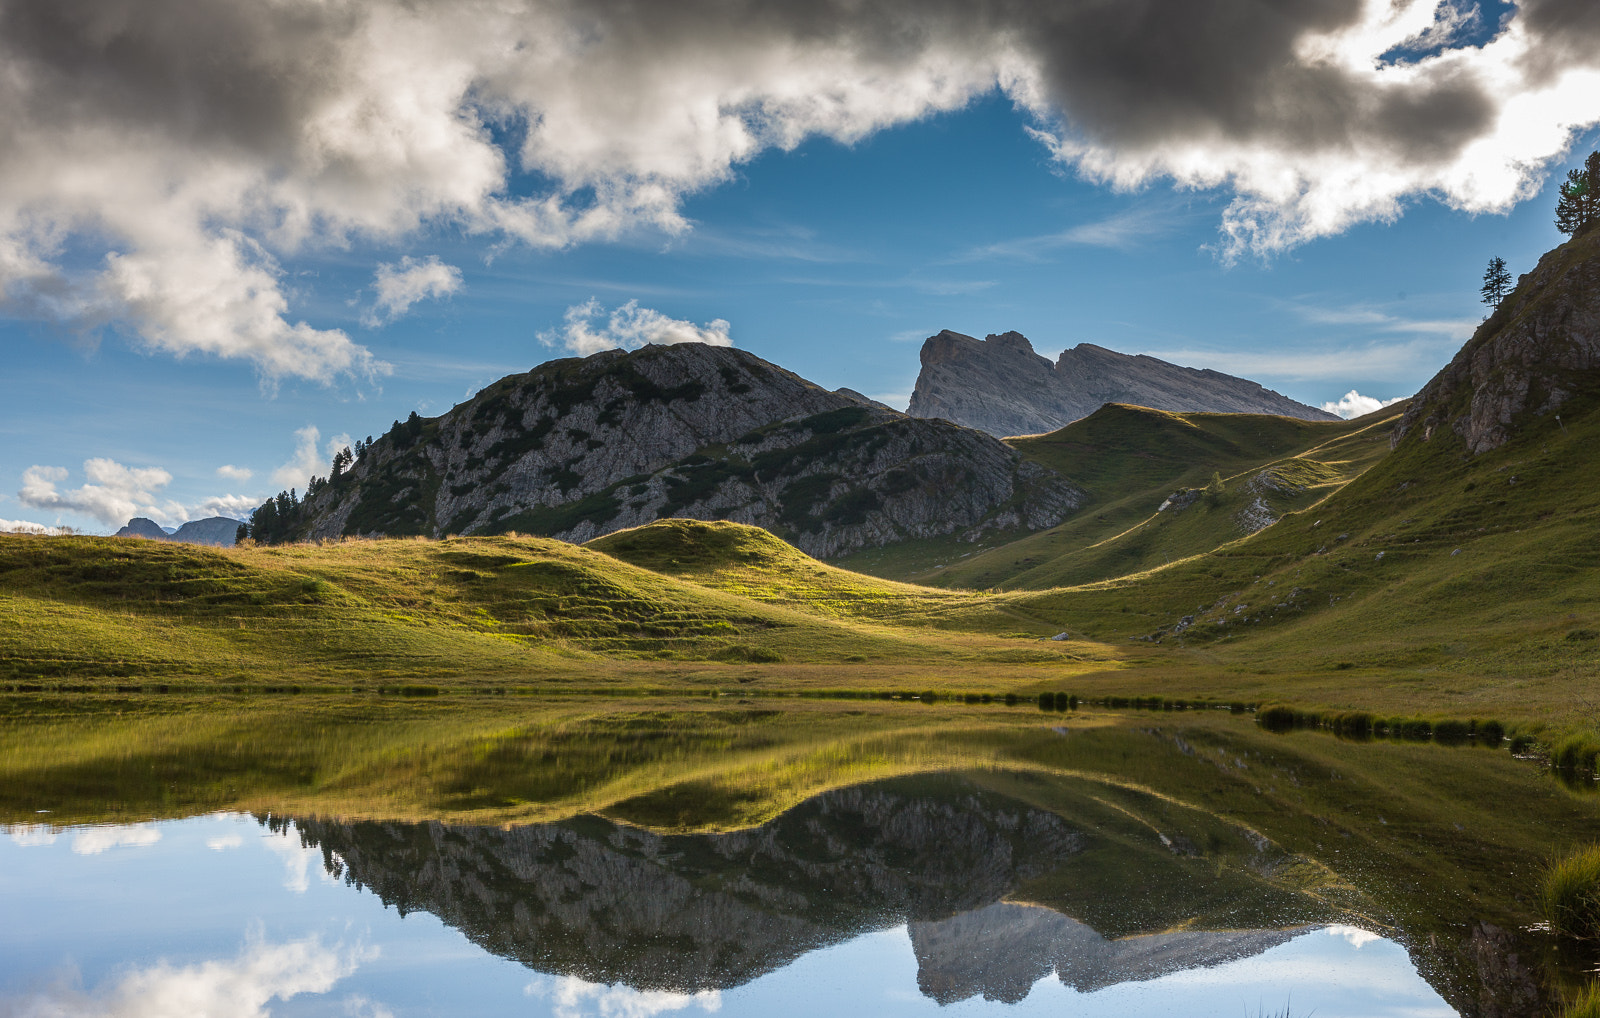 Photograph Reflections in the Dolomites by Hans Kruse on 500px